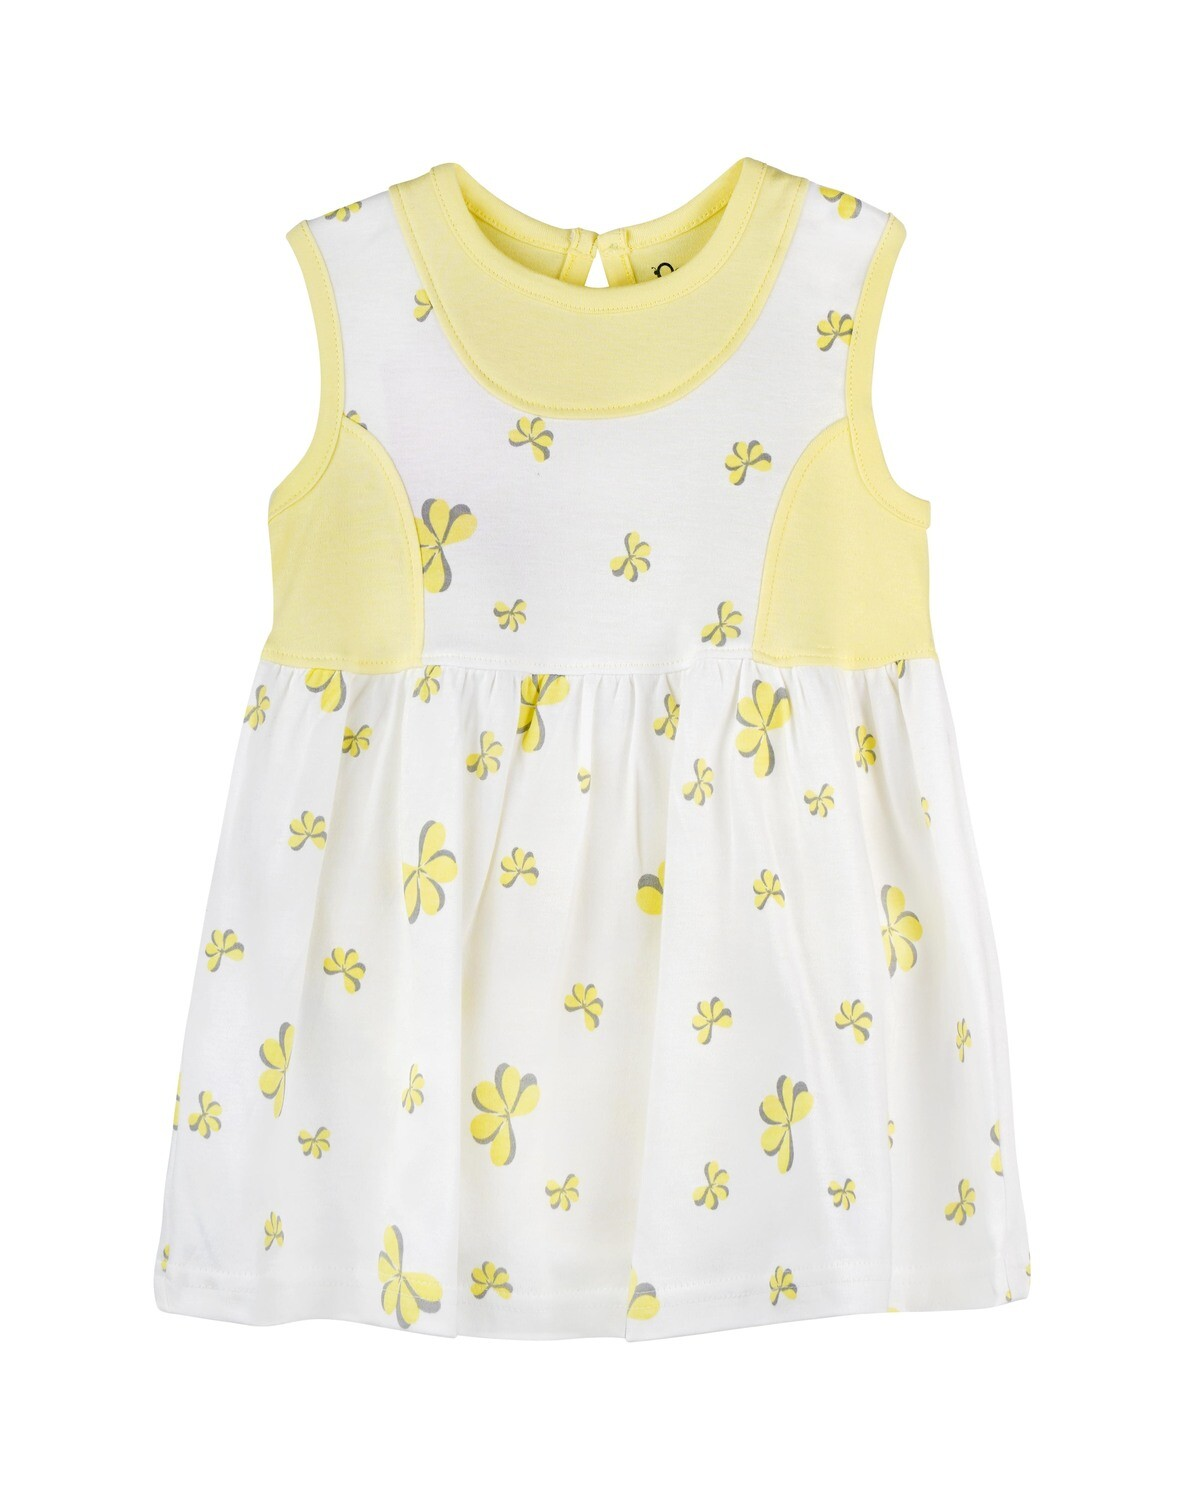 ESTELLE Tender Yellow Sleeveless Frock and Panties for Baby Girls